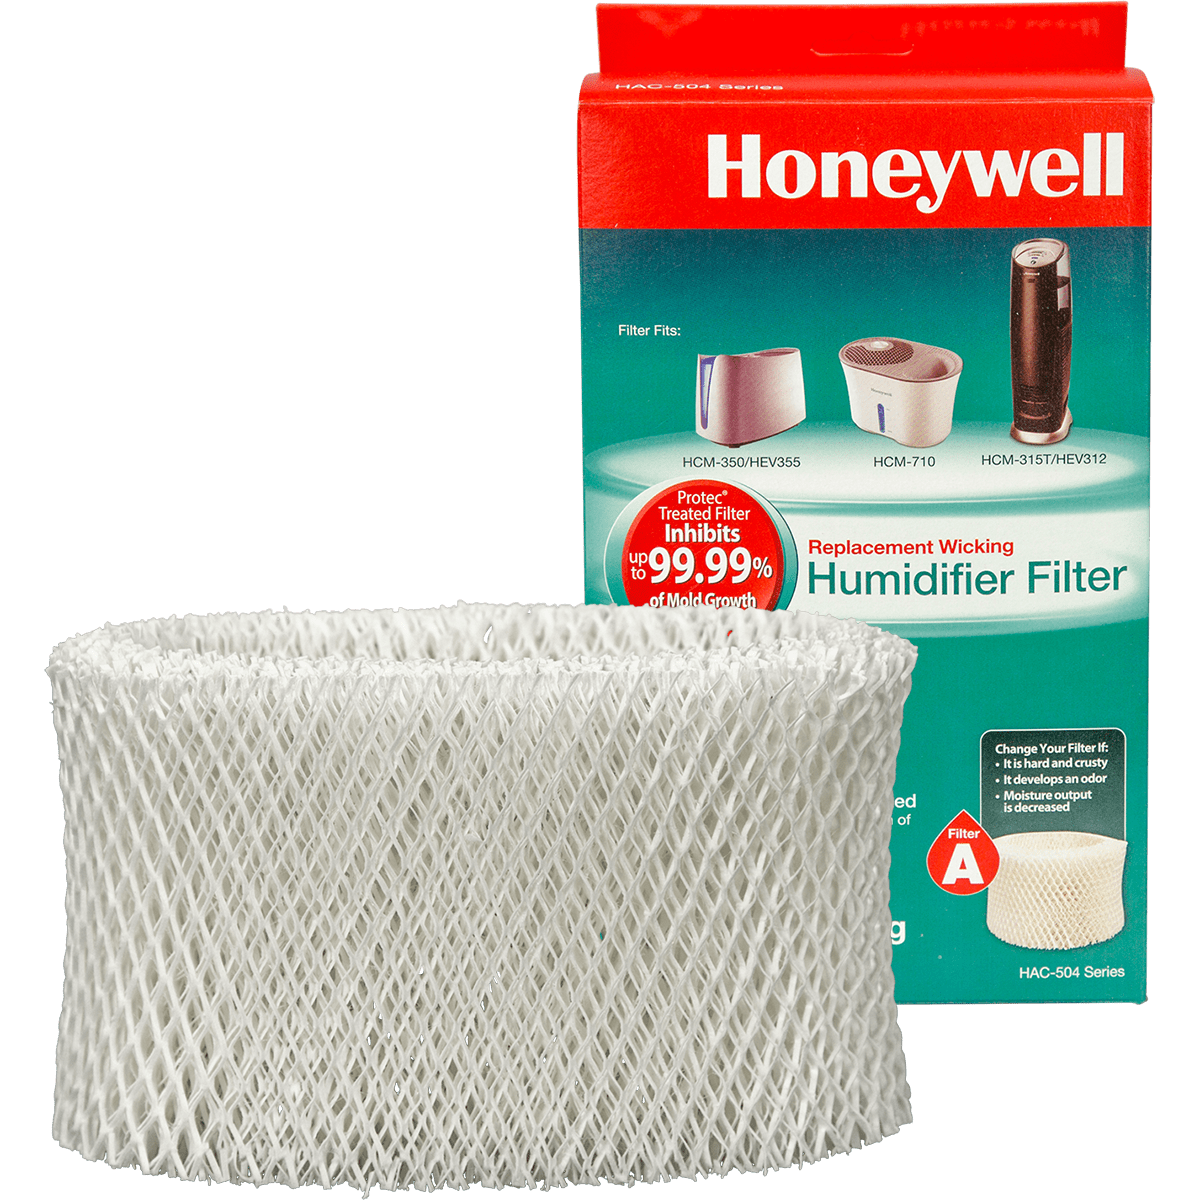 Honeywell Replacement Filter A (HAC-504V1) ho1273